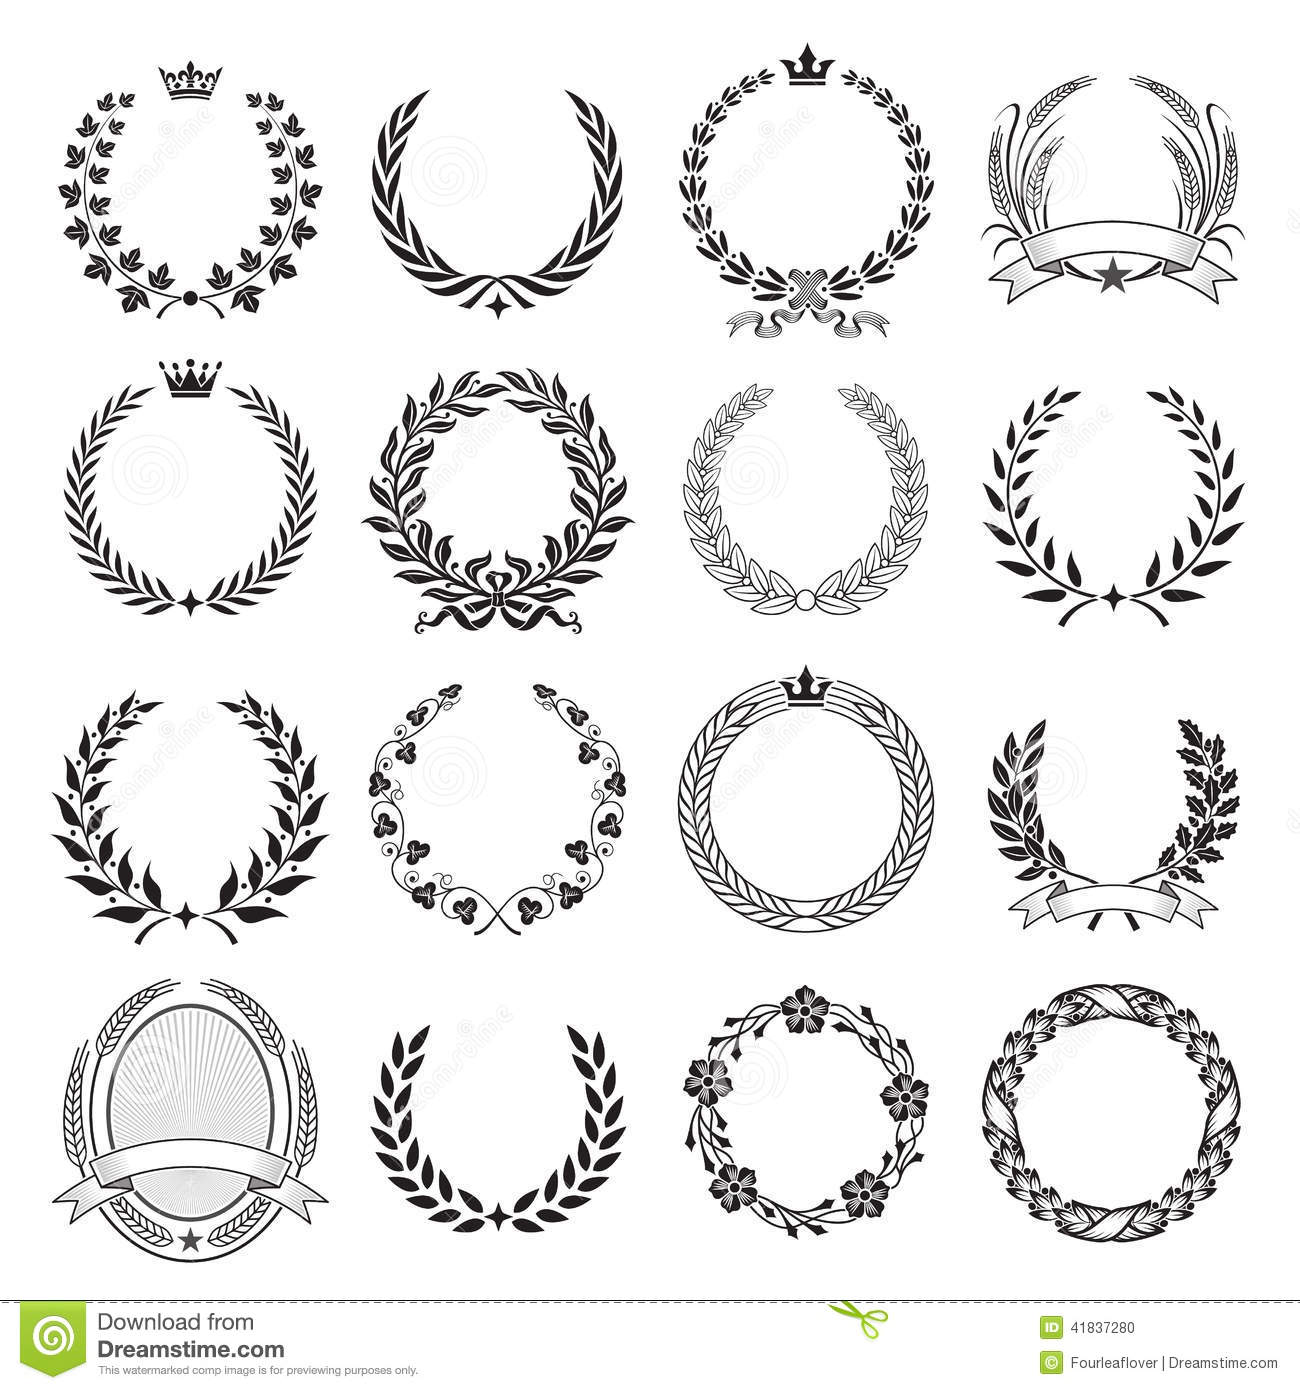 laurel leaf crown template - laurel wreath round ceremonial frames stock vector